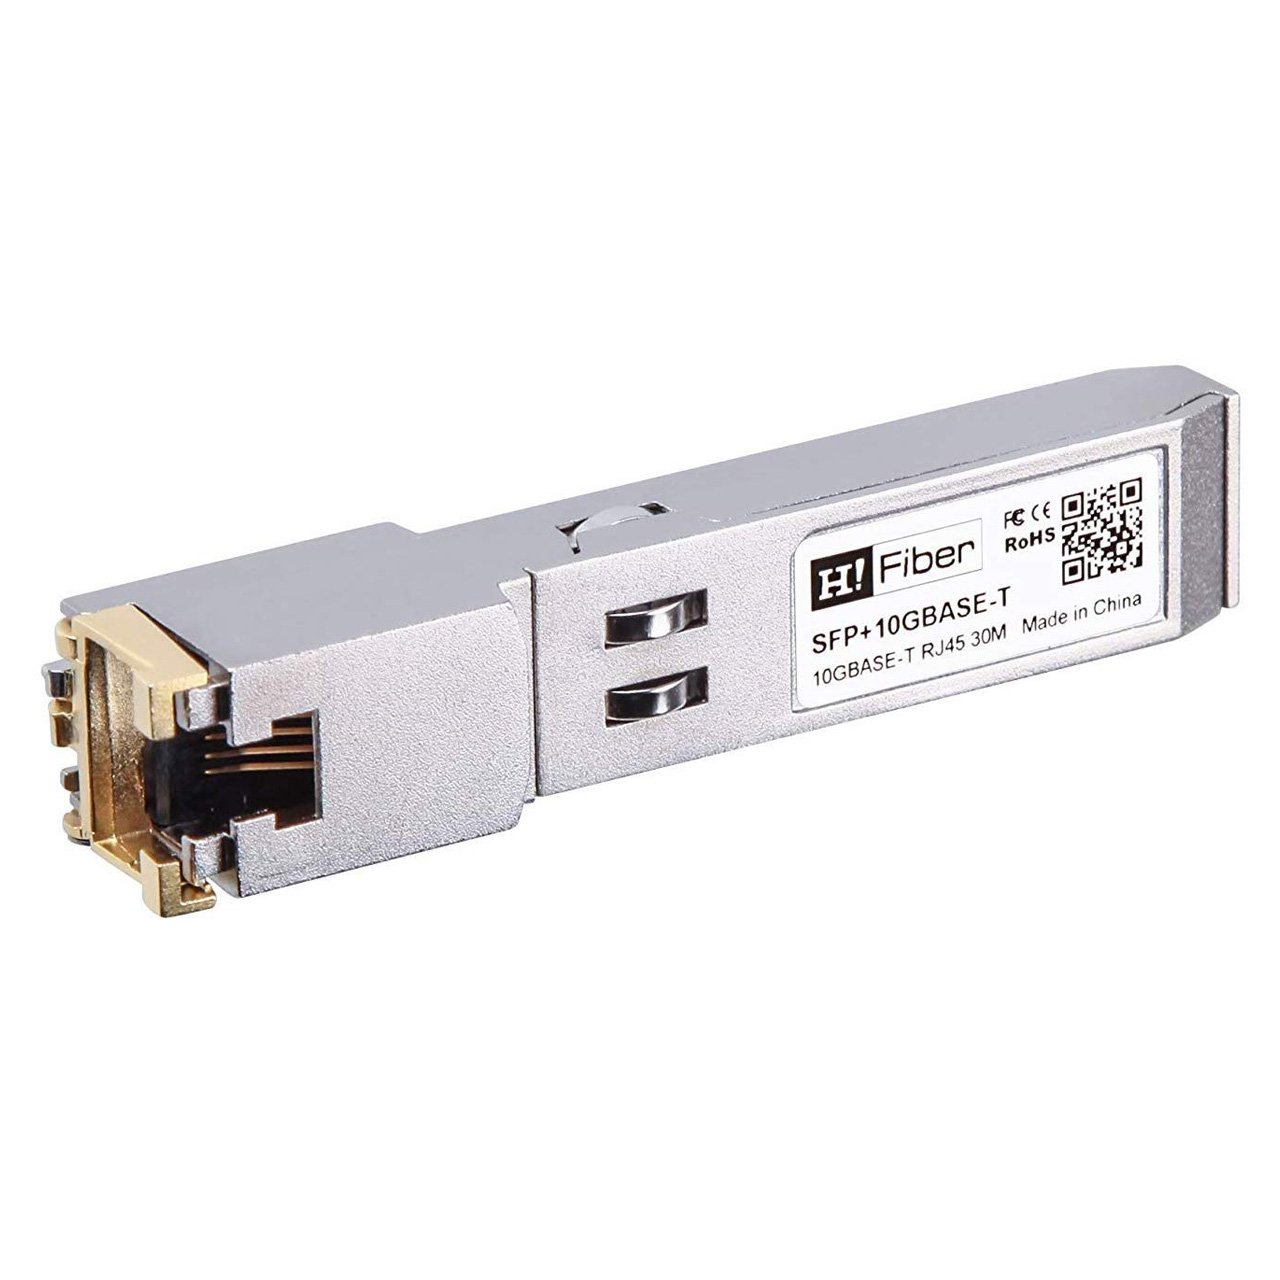 SFP+ Copper Transceiver 10GBase-T, Cat 6a/7, 30M 4